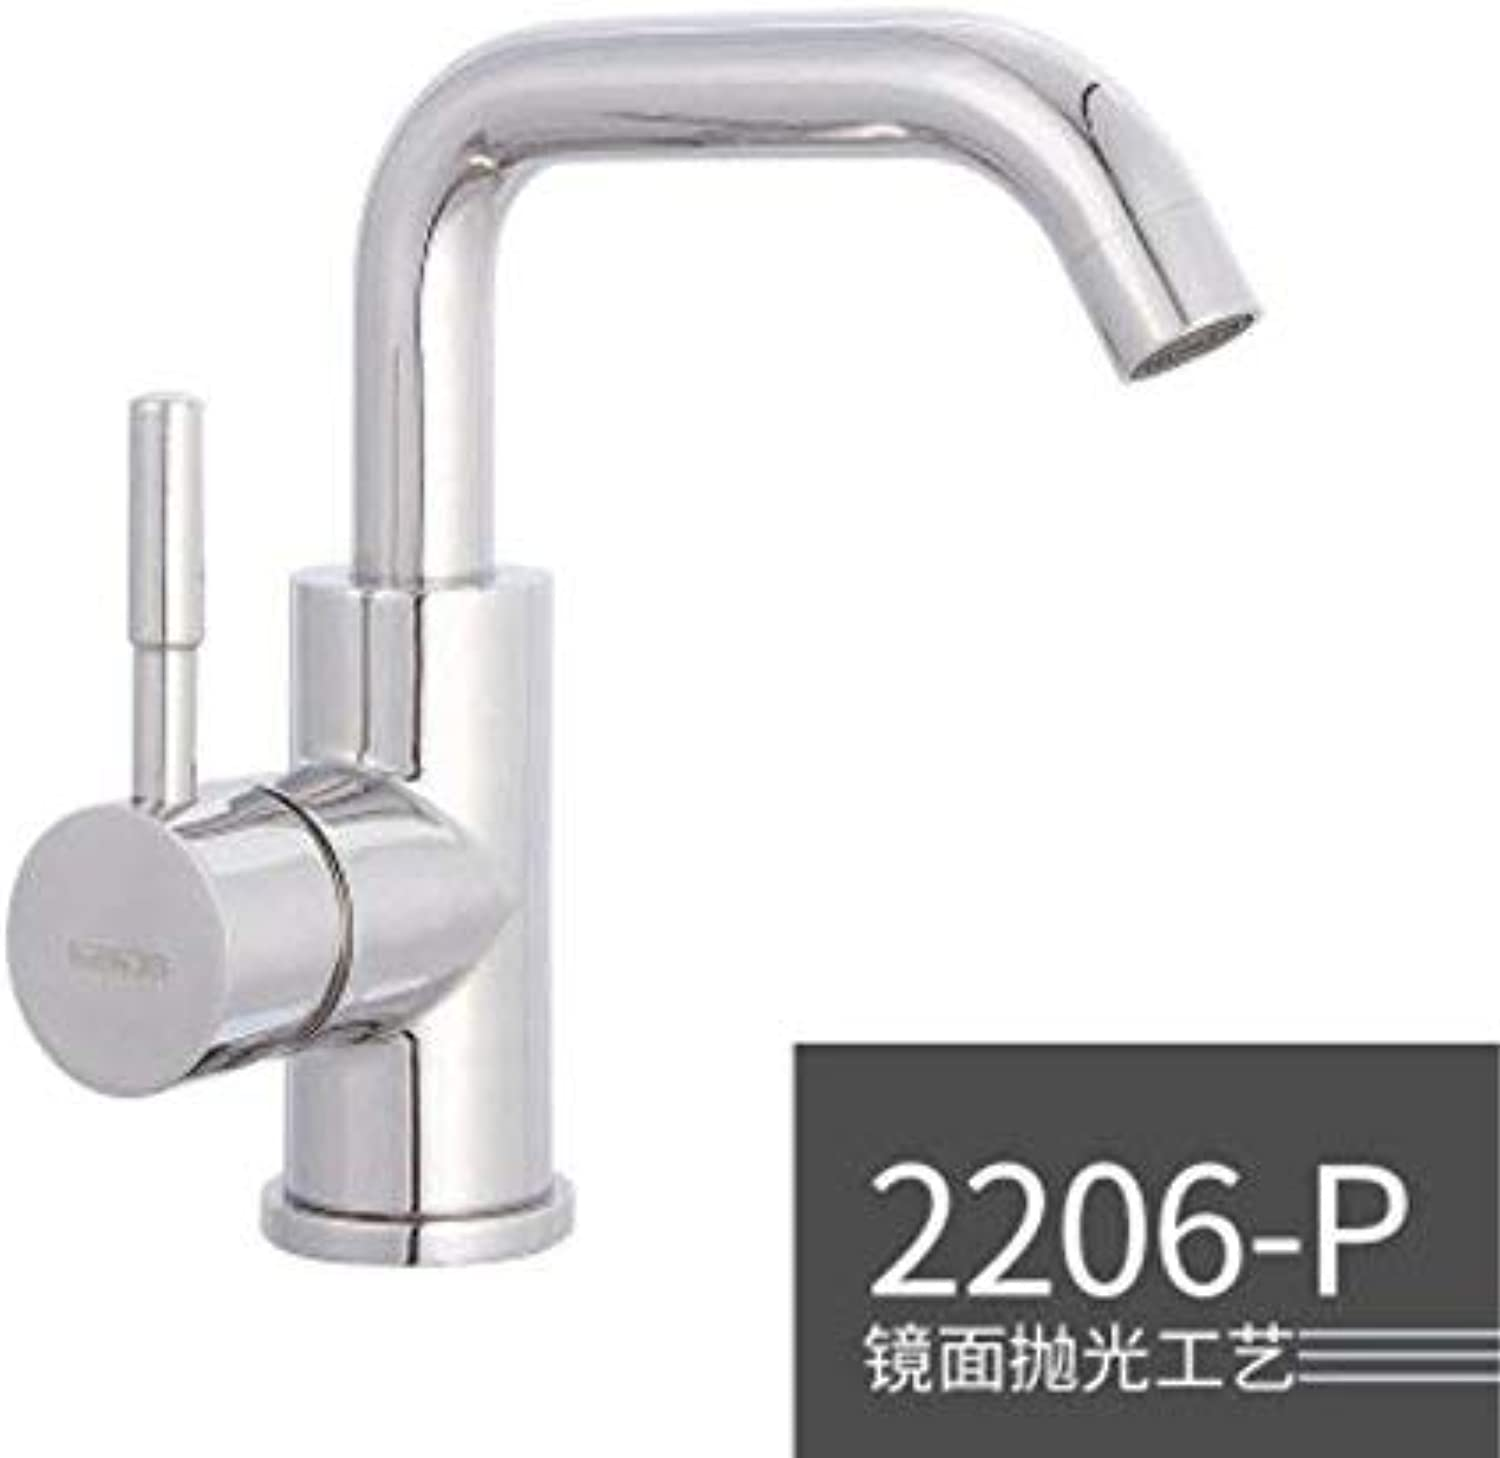 Oudan 304 Stainless Steel Basin, Faucet, Hot and Cold Water Tank, Kitchen Faucet Washbasin. (color   -, Size   -)